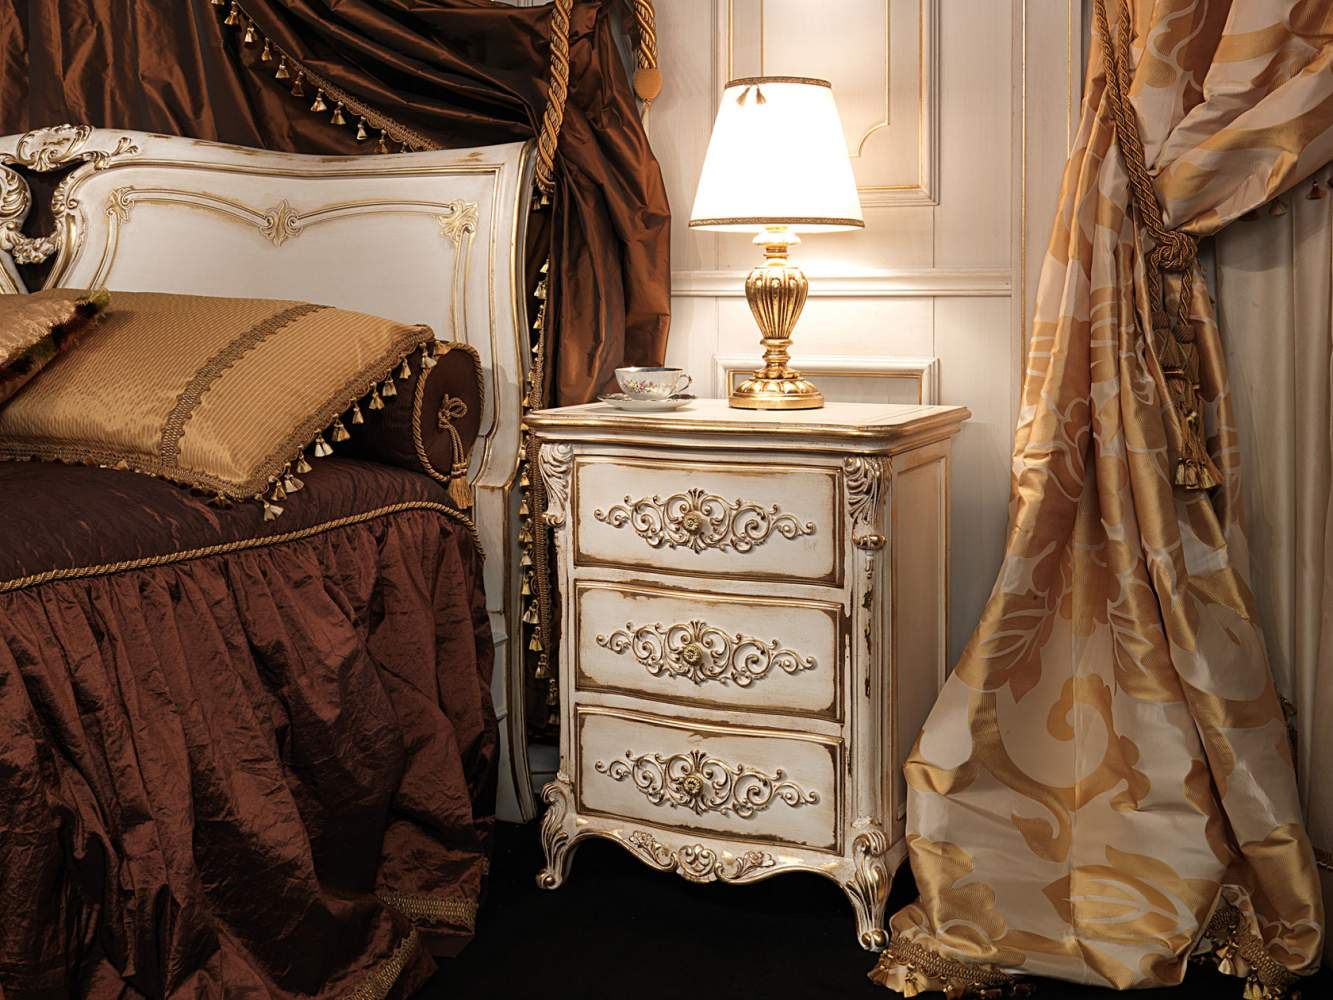 Classic Louis XVI bedroom, carved night table with floral carvings by hand